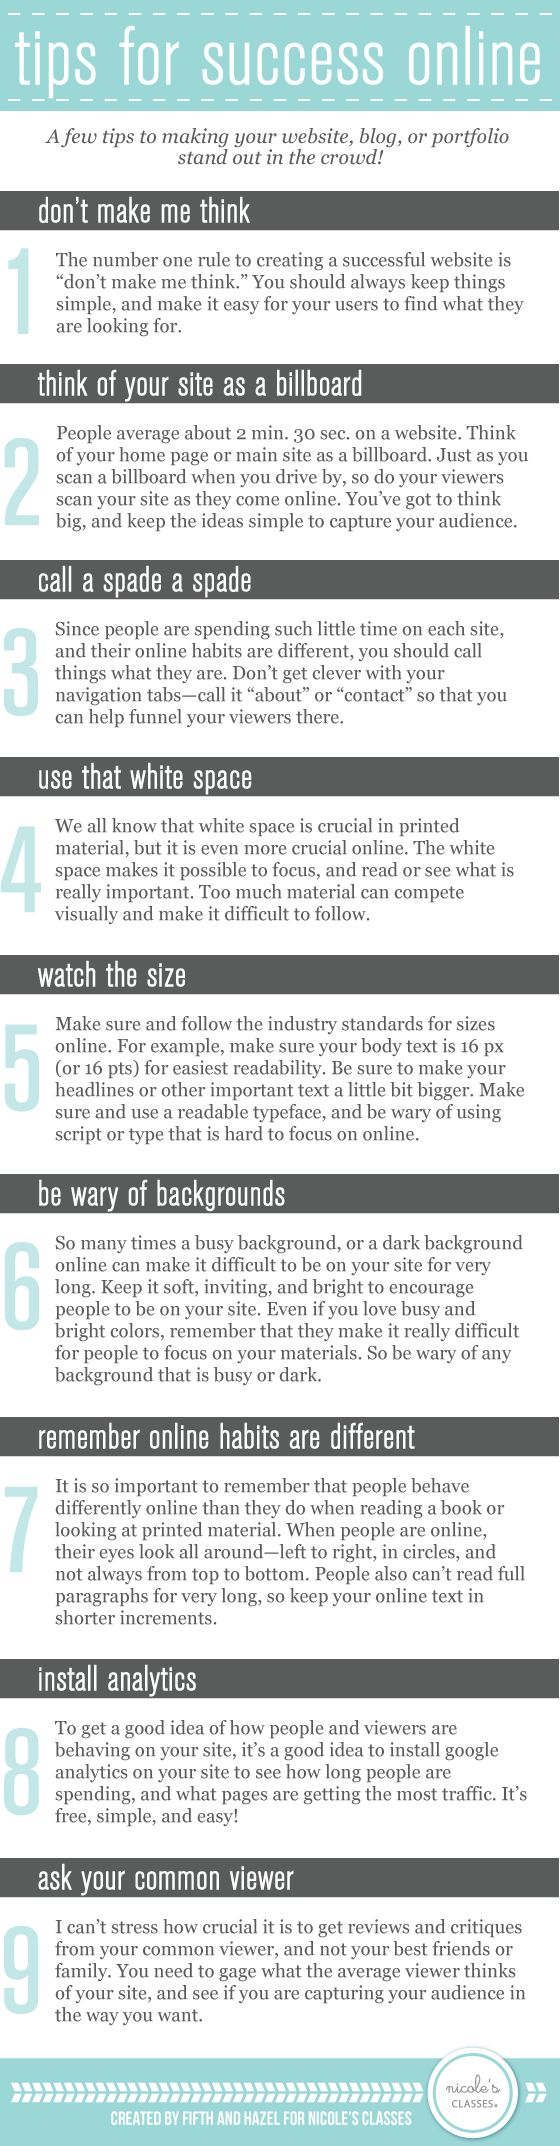 10 Tips to Making Your Website and Portfolio Stand Out in the Crowd | #webdesign #portfolio #infographic http://franchise.avenue.eu.com/